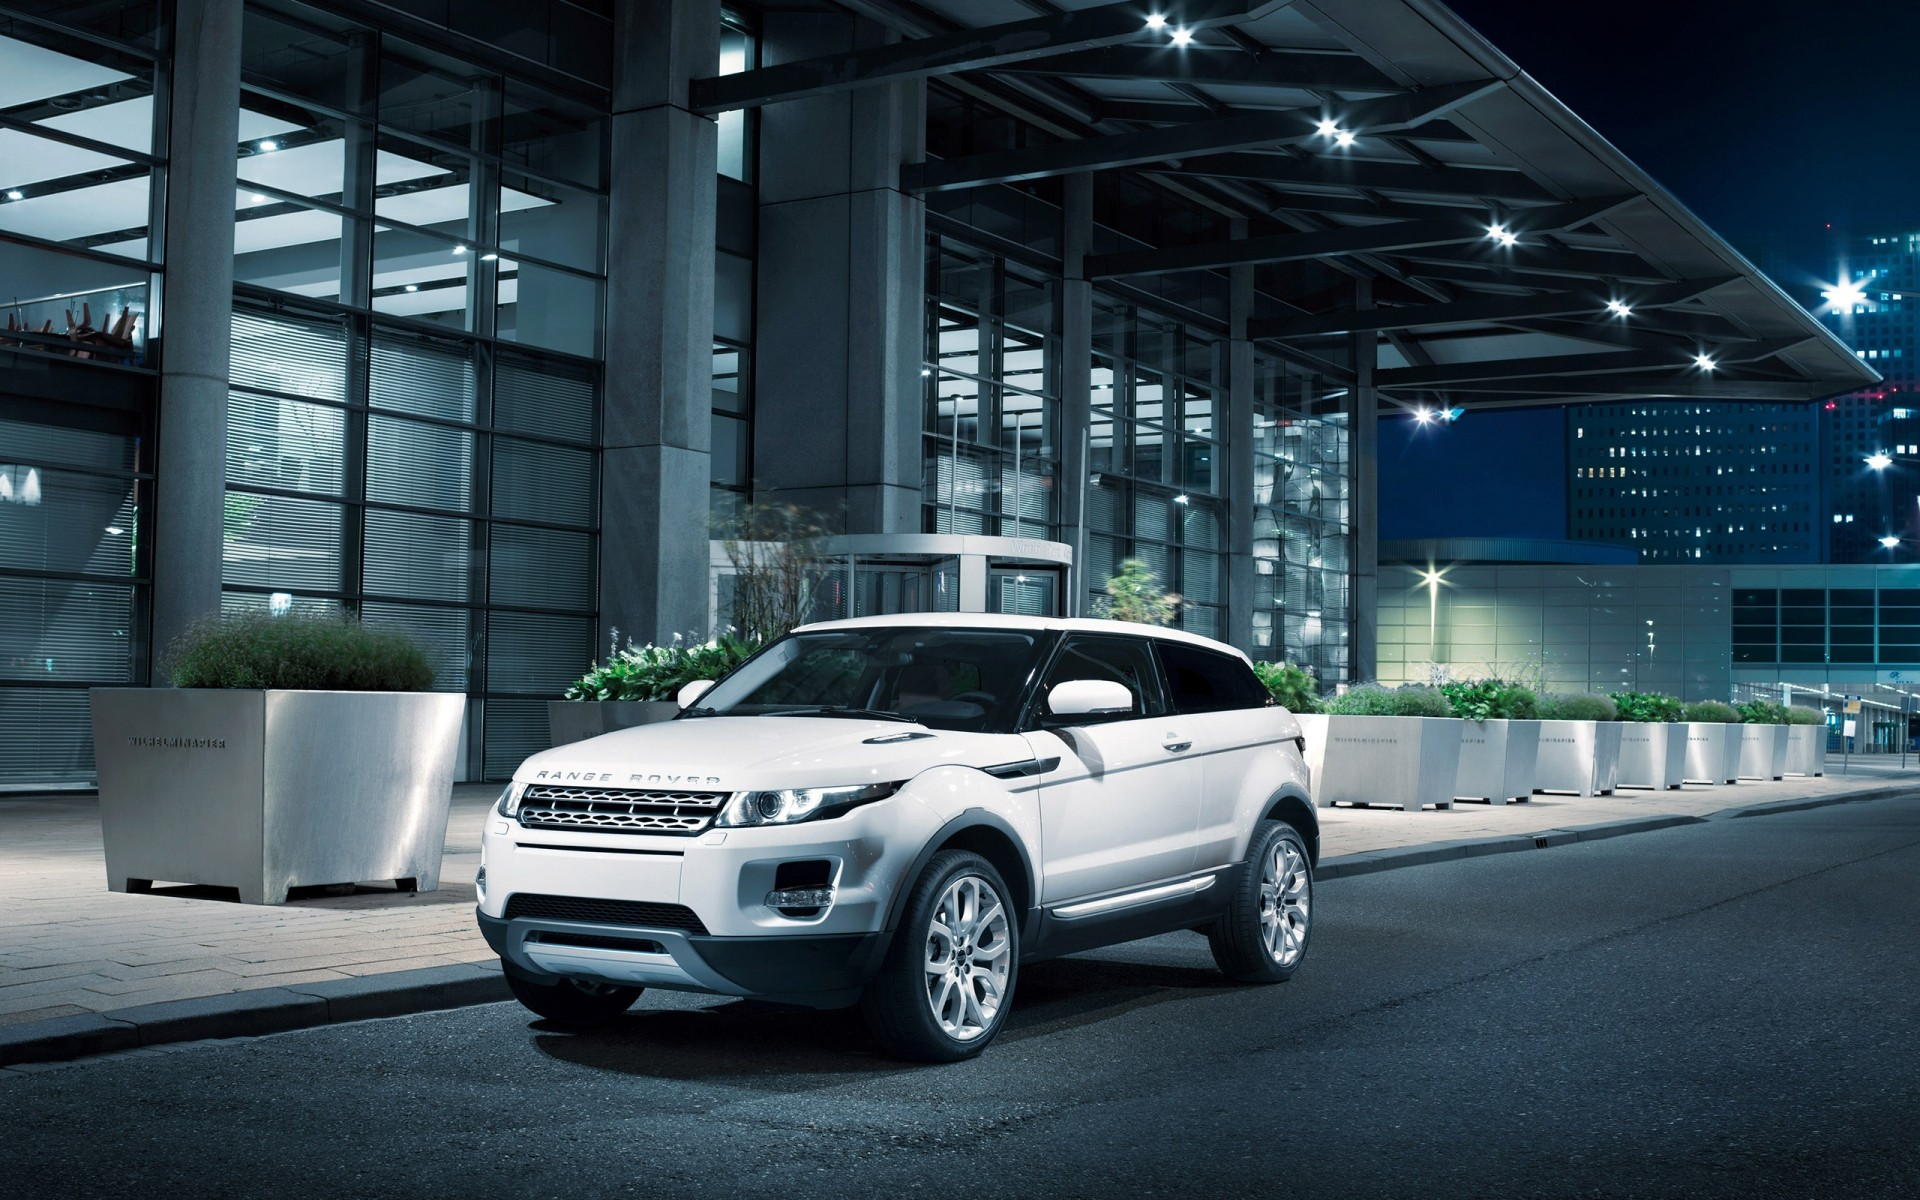 White Range Rover Evoque Android Wallpapers For Free